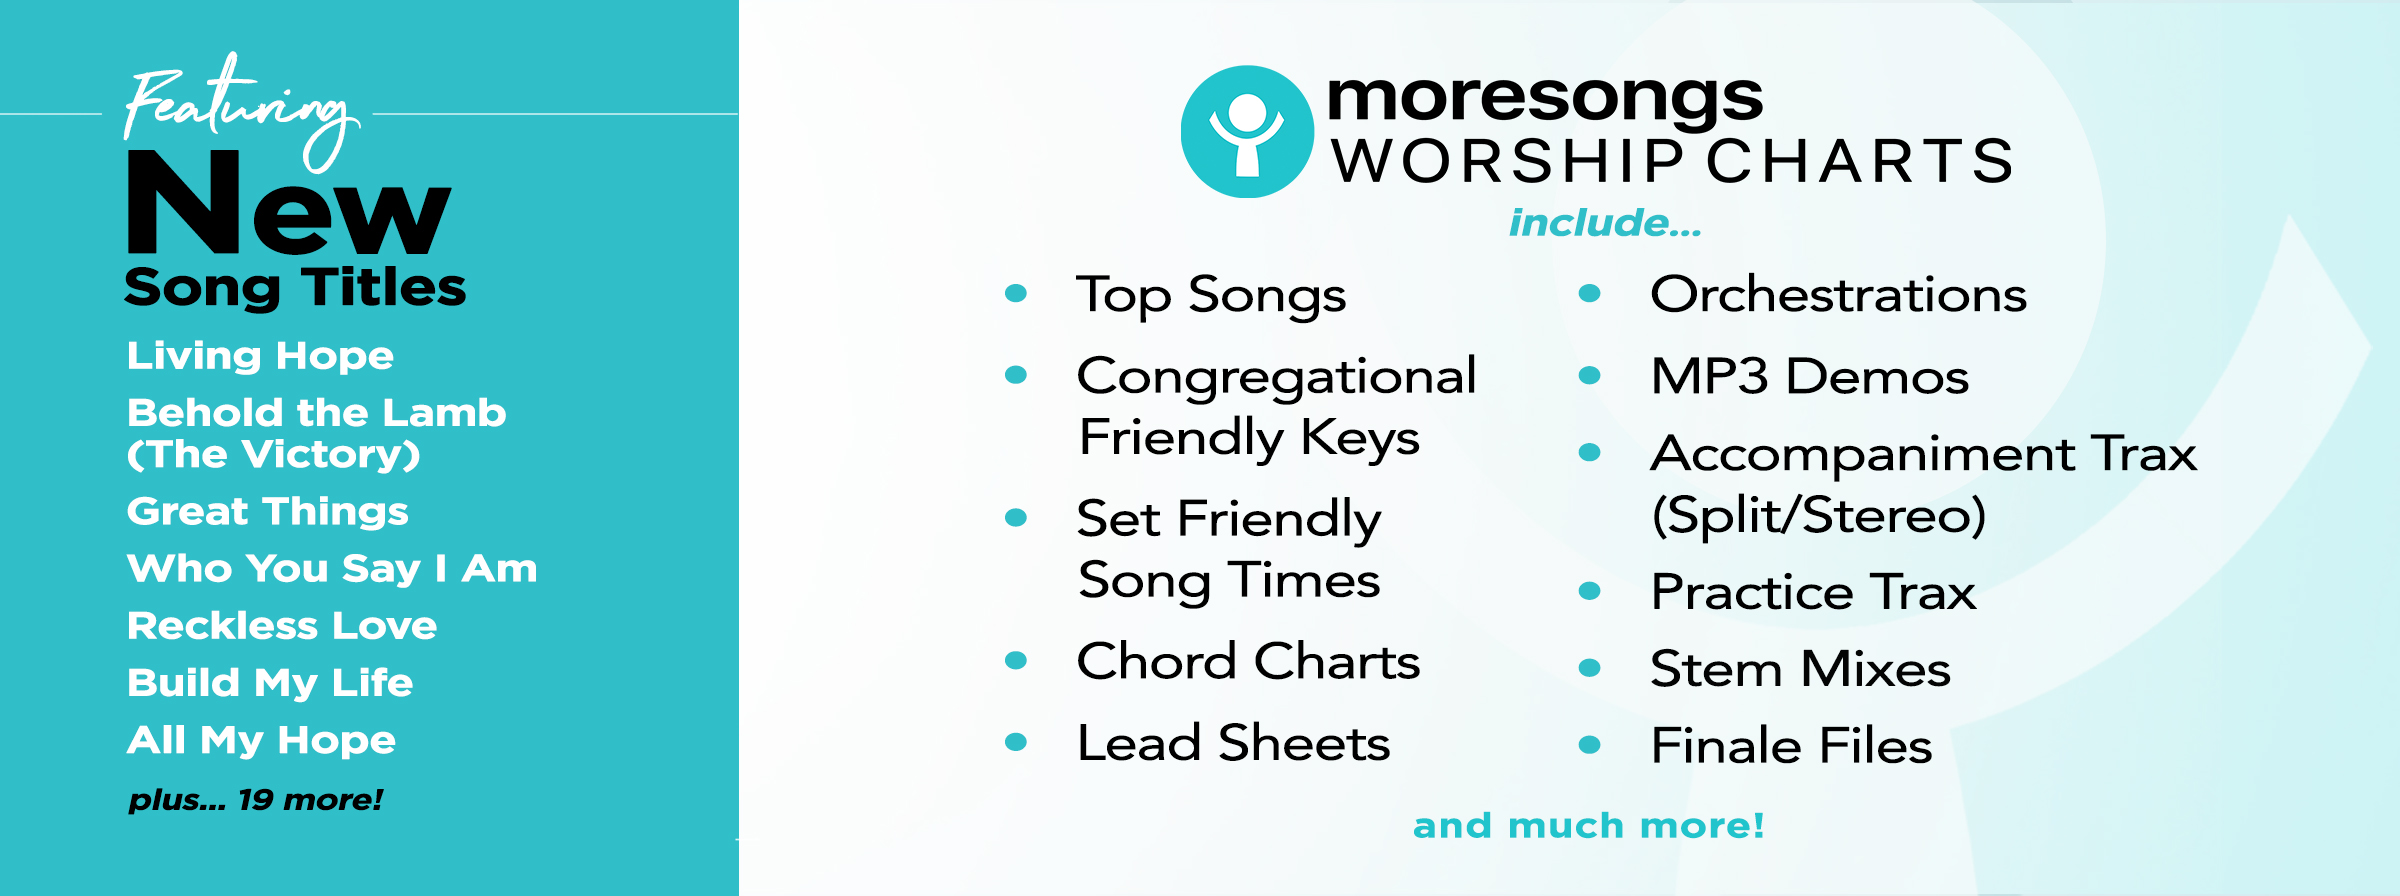 Word Music & Church Resources | Word Choral Club | Church Music